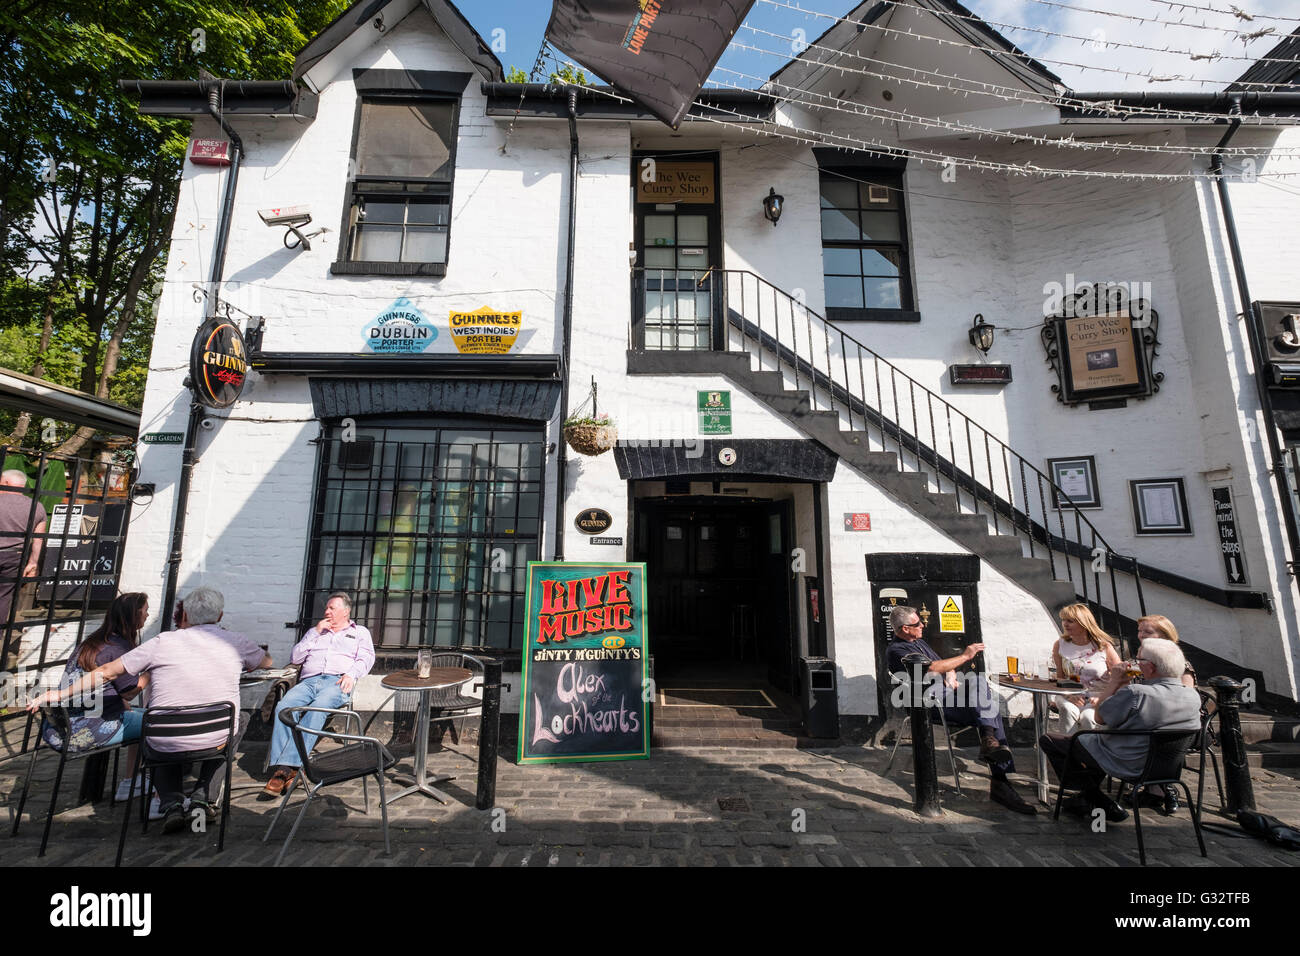 Exterior of Jinty Mcginty's pub on Ashton lane in west end of Glasgow, United Kingdom - Stock Image